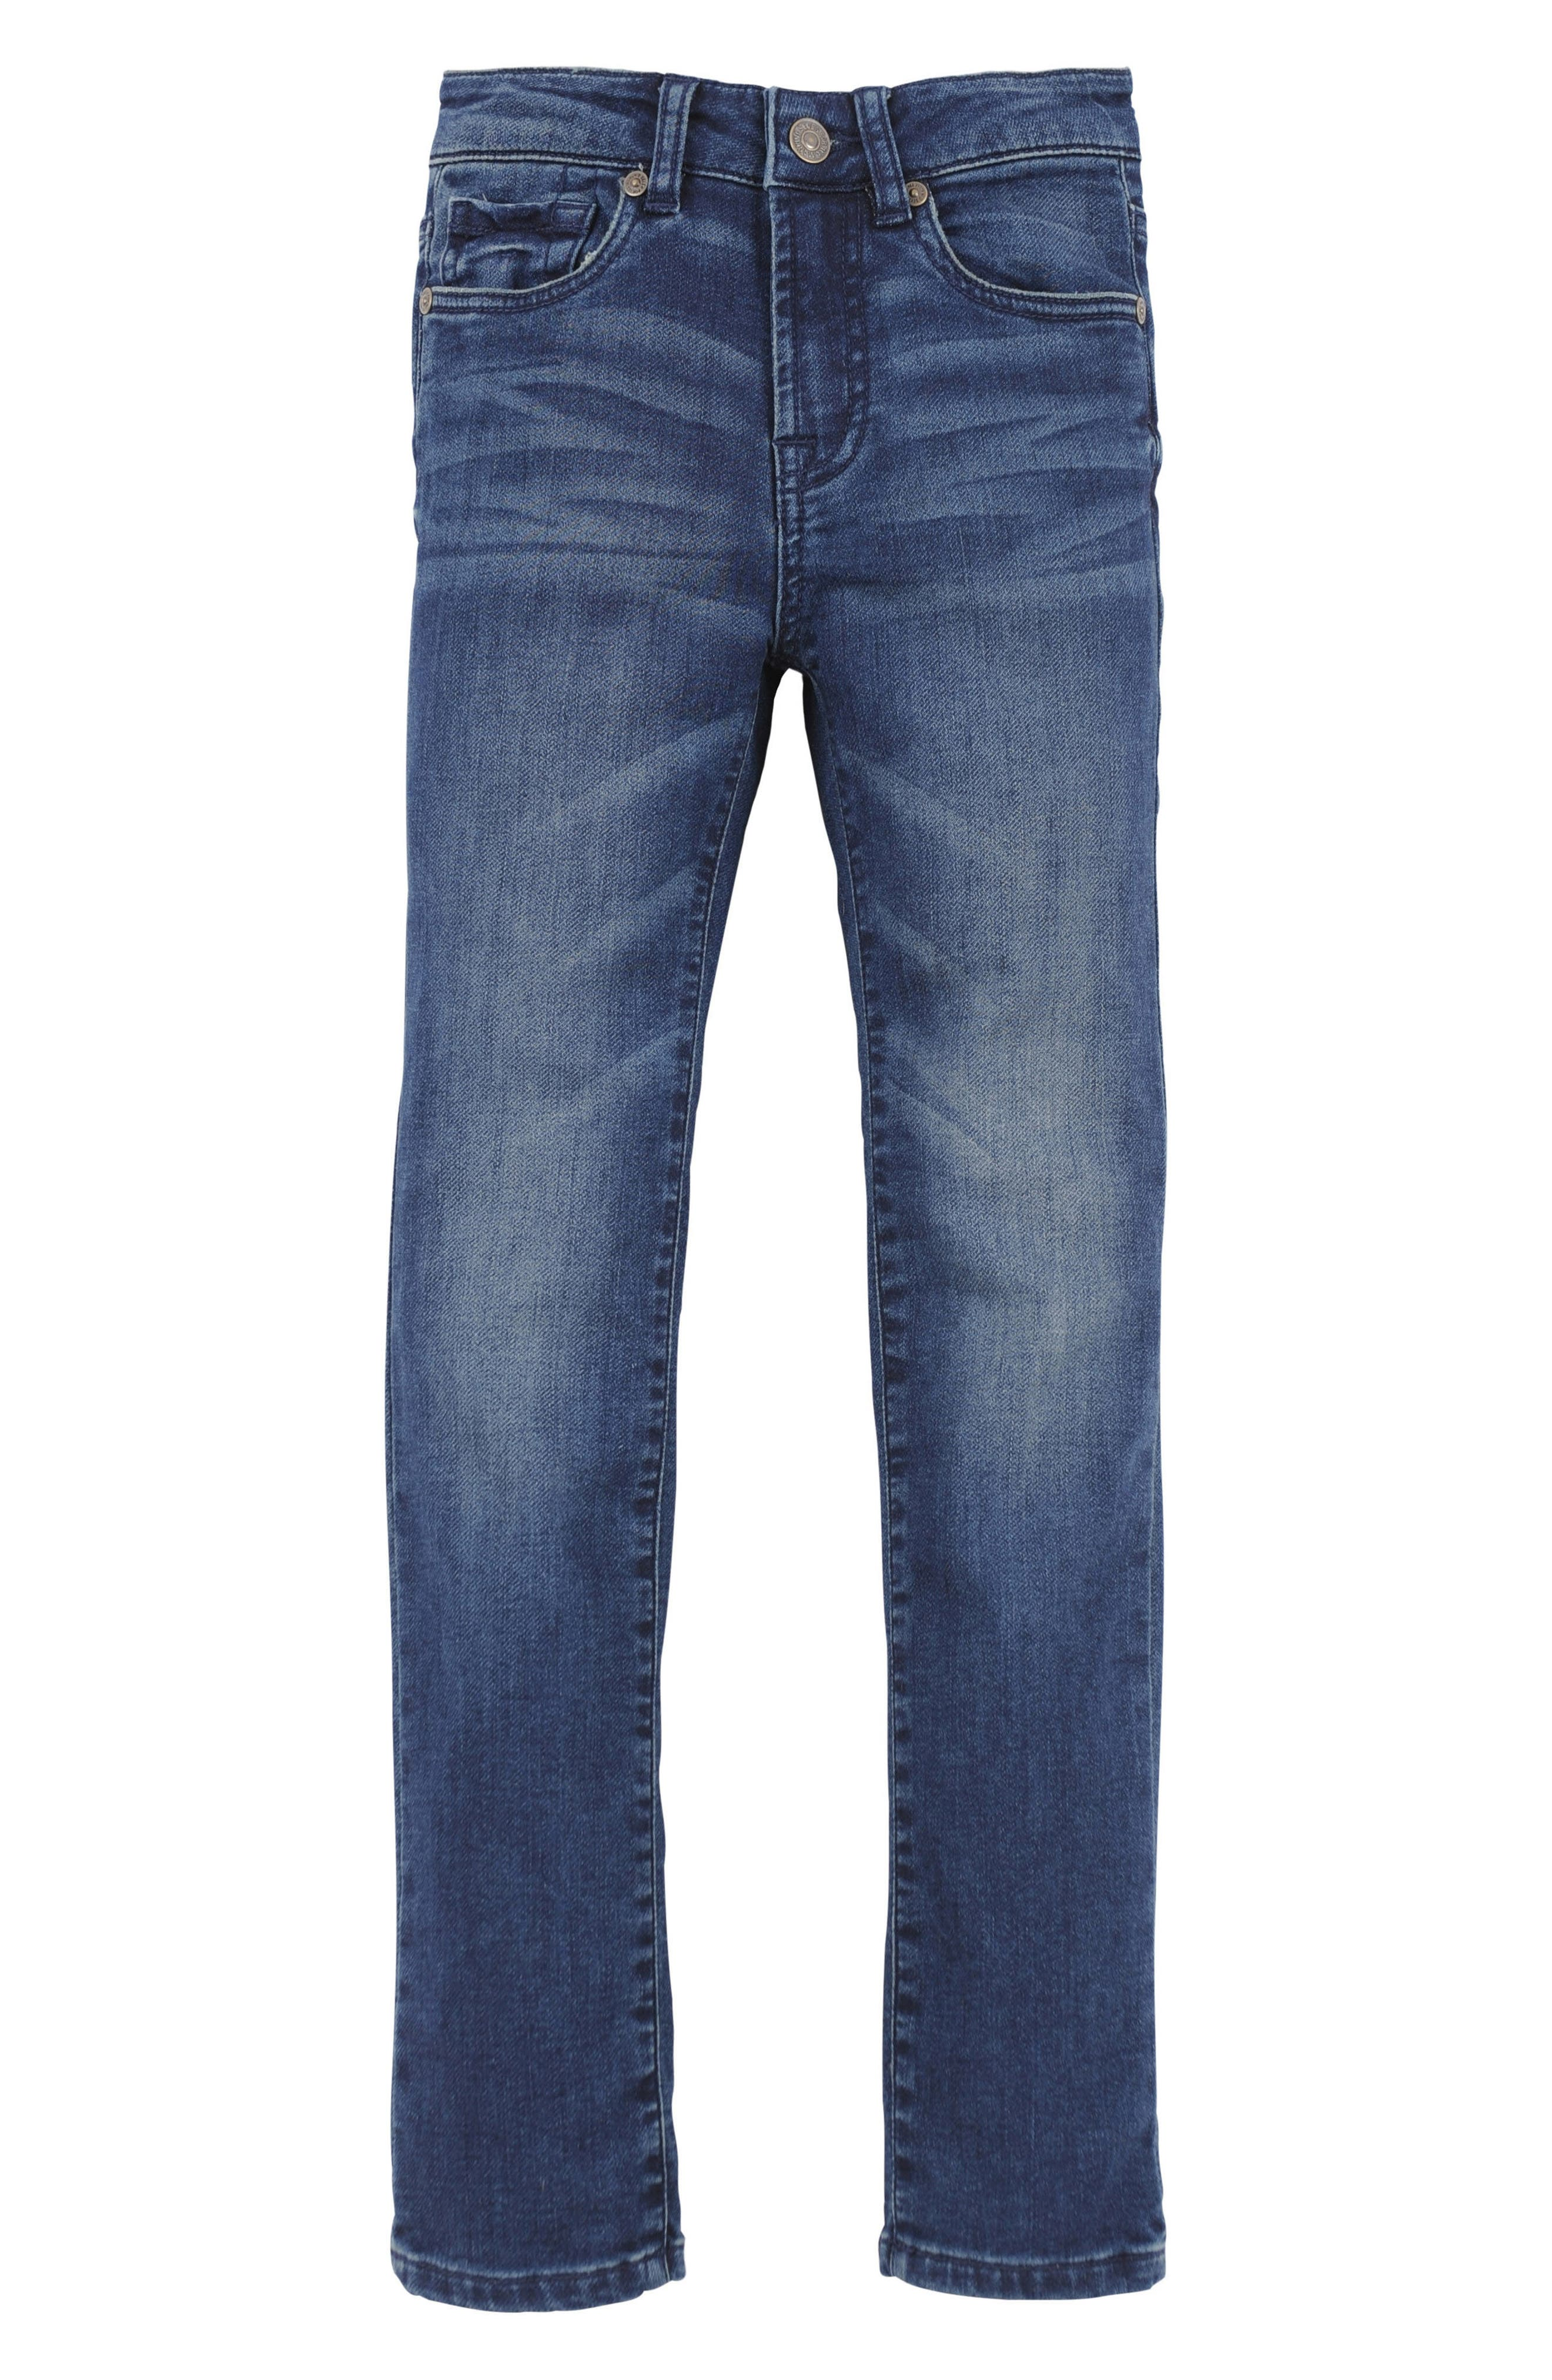 Slimmy Luxe Sport Jeans,                             Main thumbnail 1, color,